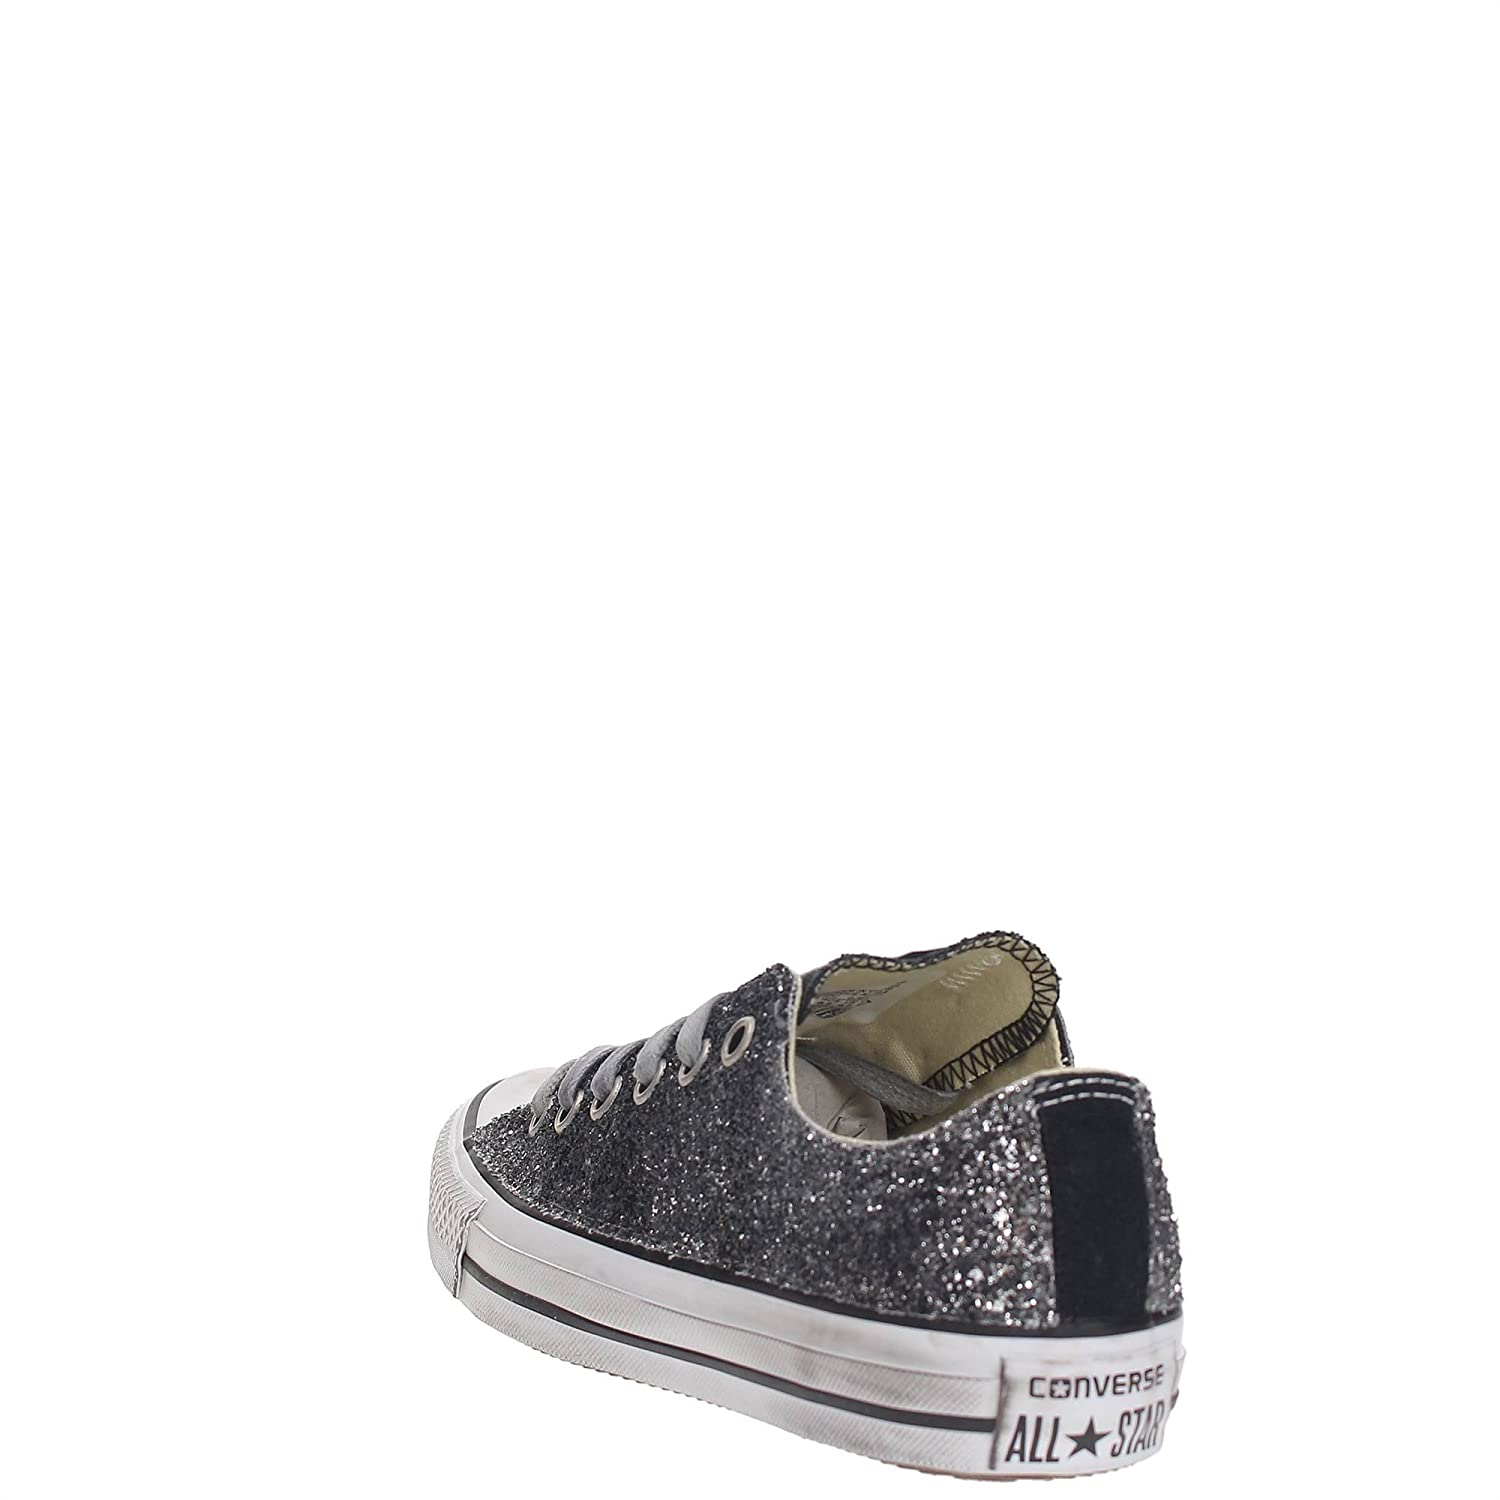 Converse 156907c Sneakers Mujer Vintage Silver Glitter 37 gjH5t07